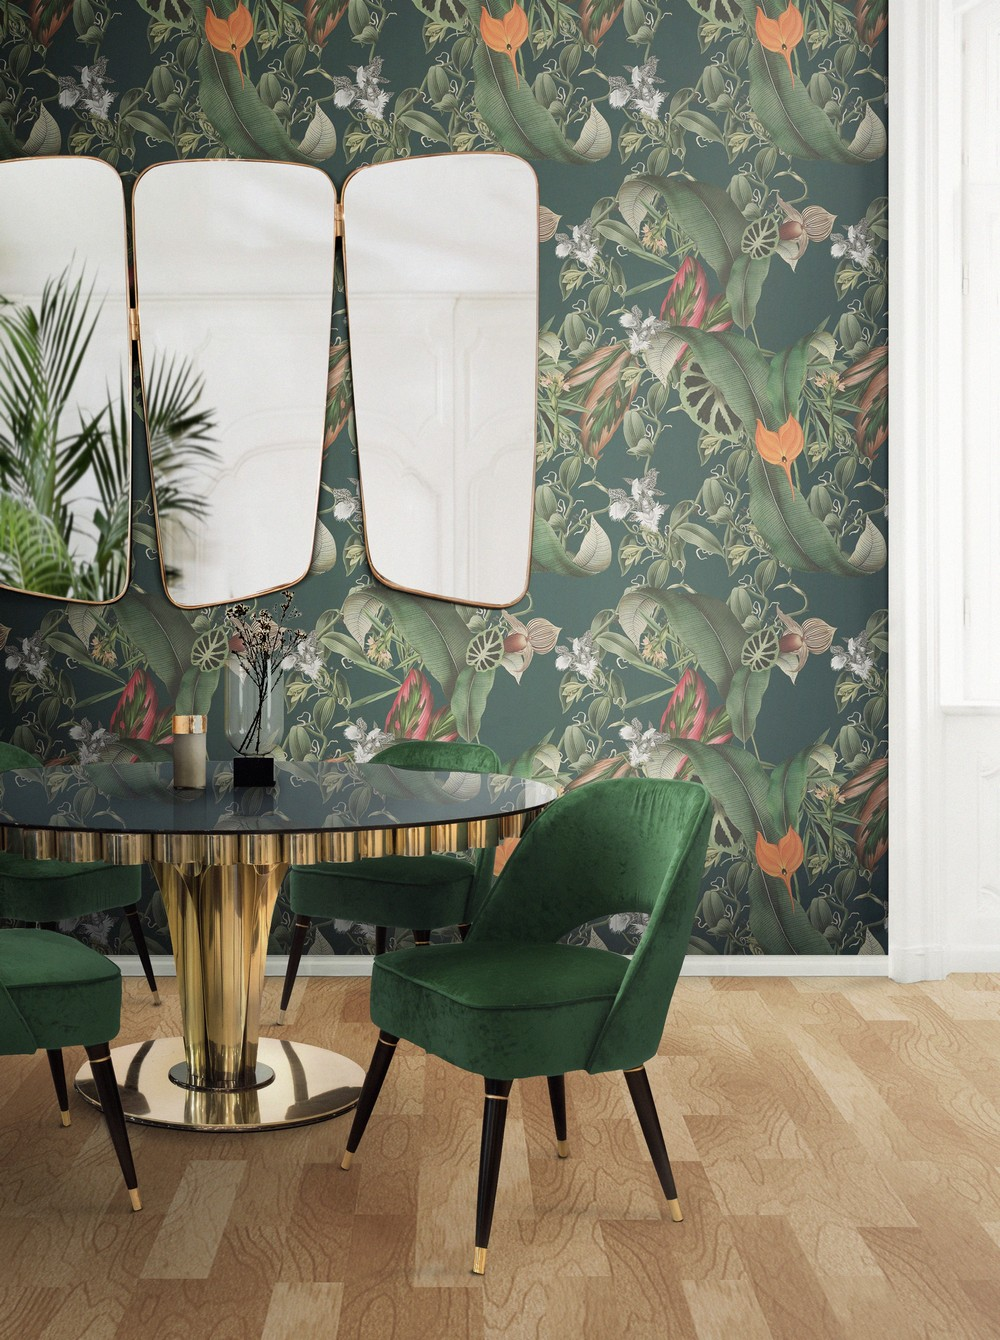 7 Luxury Mirrors That Will Bring Life To Your Contemporary Dining Room luxury mirrors 7 Luxury Mirrors That Will Bring Life To Your Contemporary Dining Room ambience 153 HR org